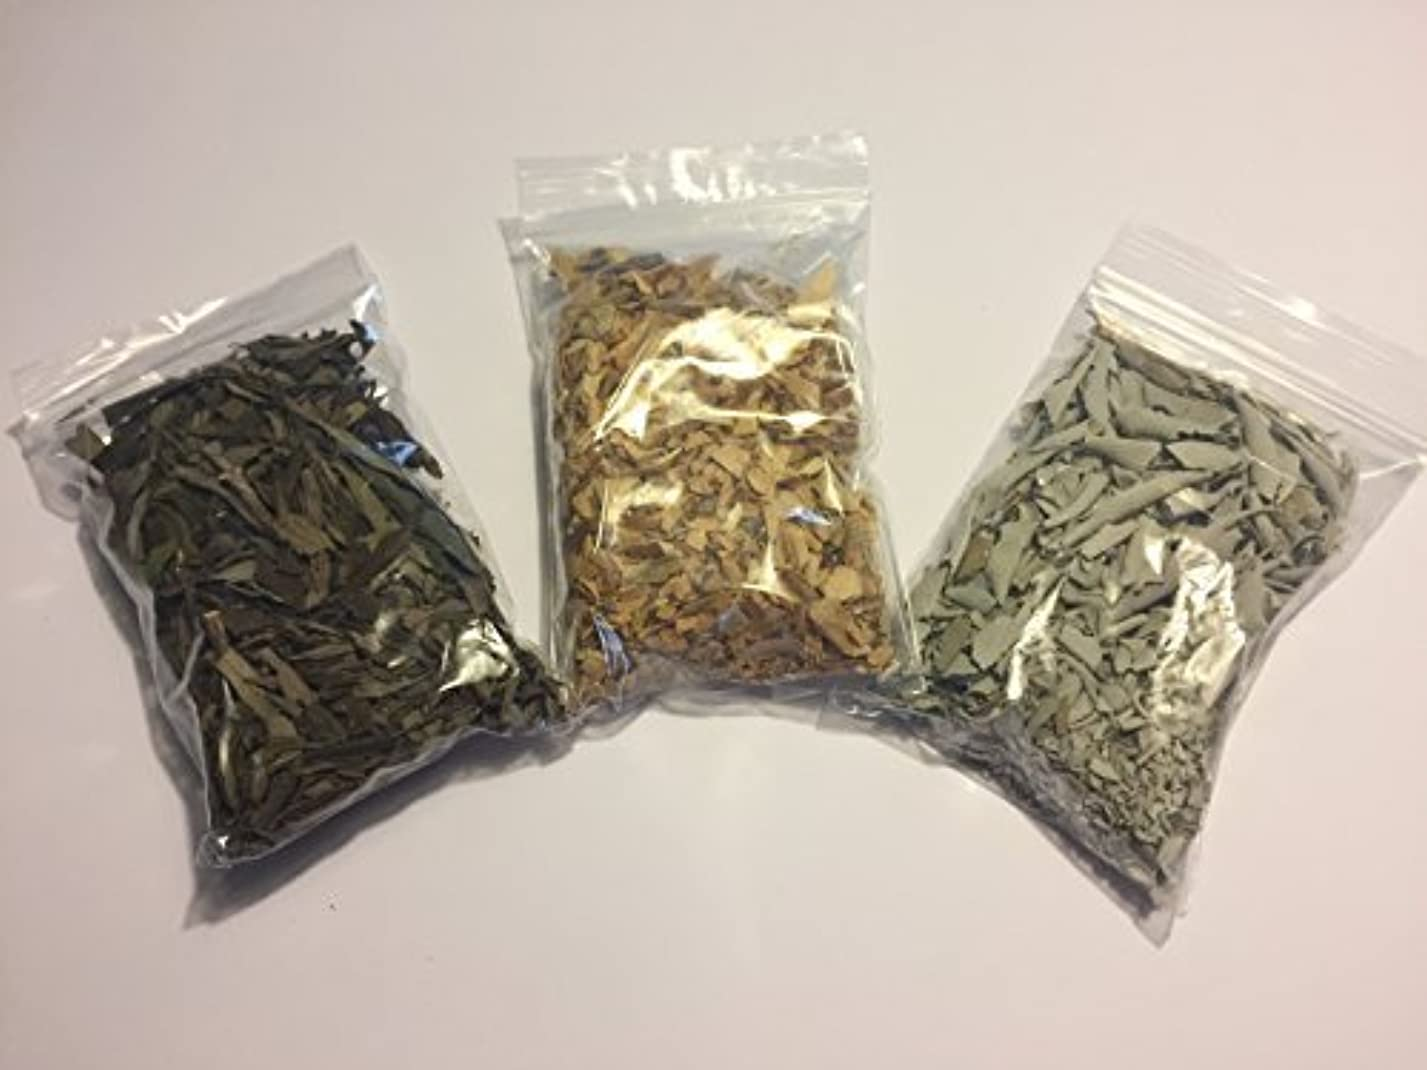 スペイン貫入シリアルLoose Leaf Variety Smudge Kit includes White Sage Lavender and Palo Santo Flakes [並行輸入品]